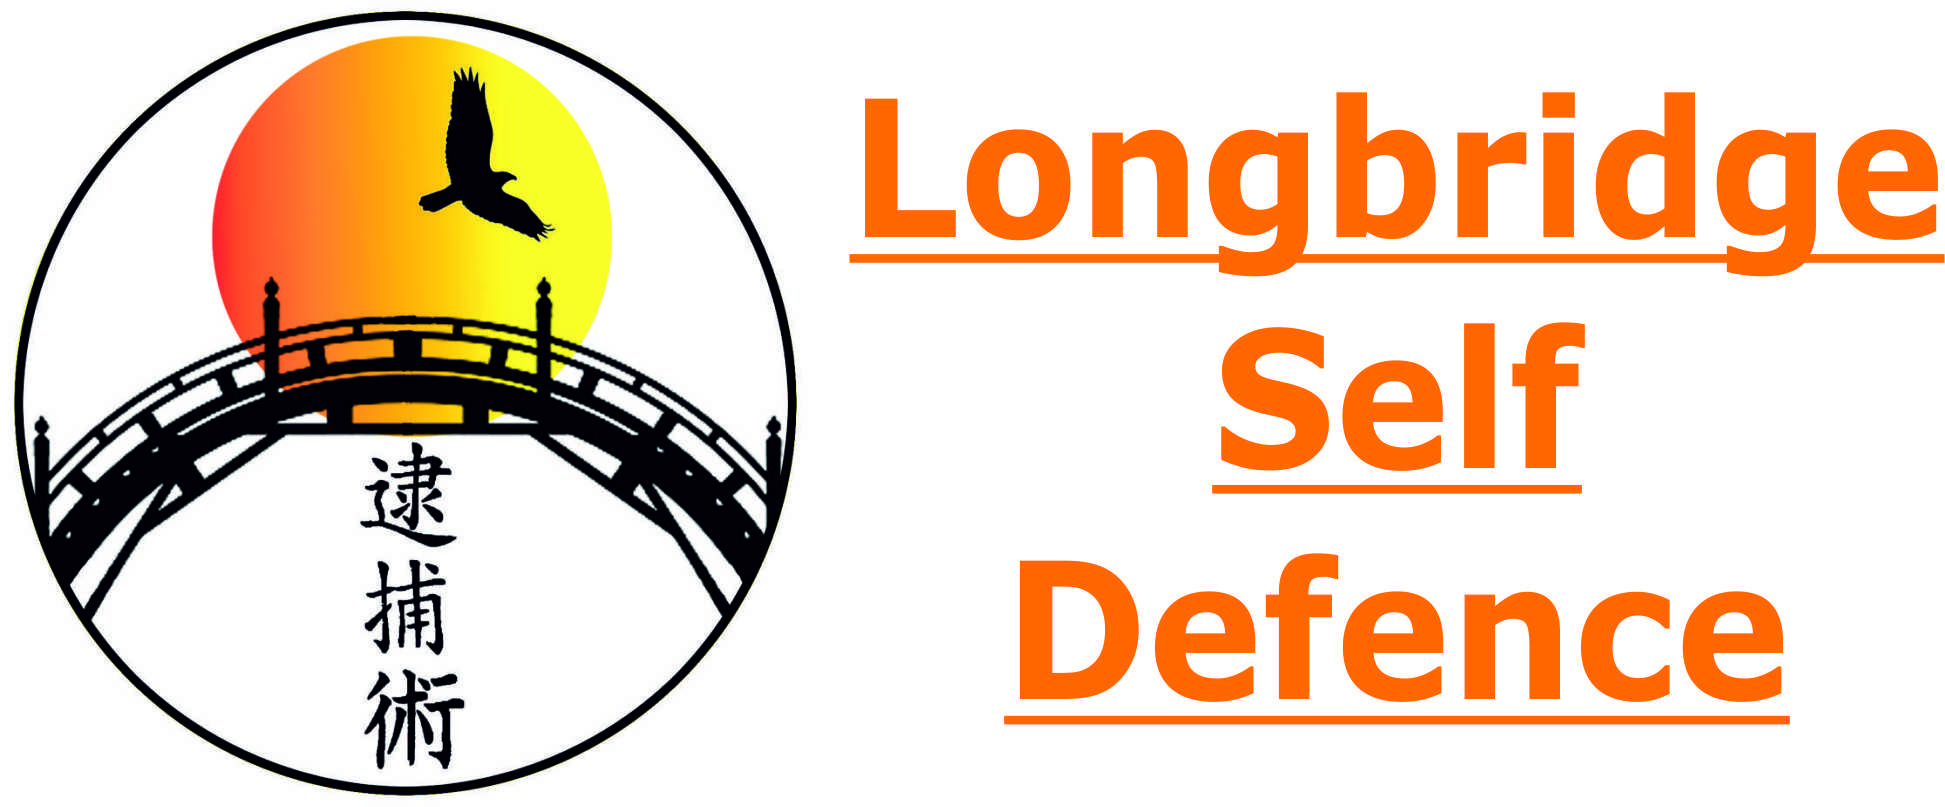 Longbridge Self Defence